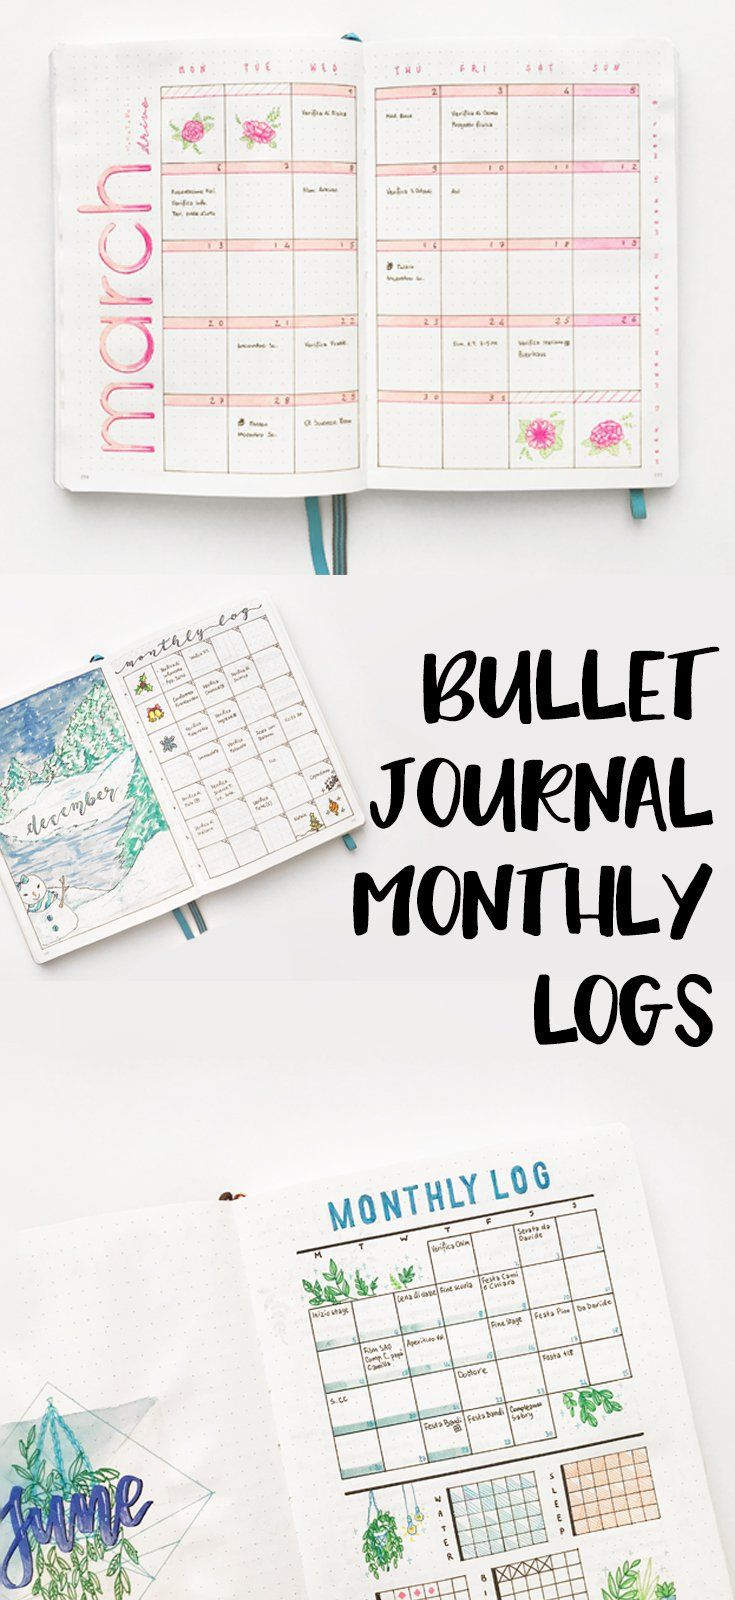 Different Types of Bullet Journal Monthly Logs